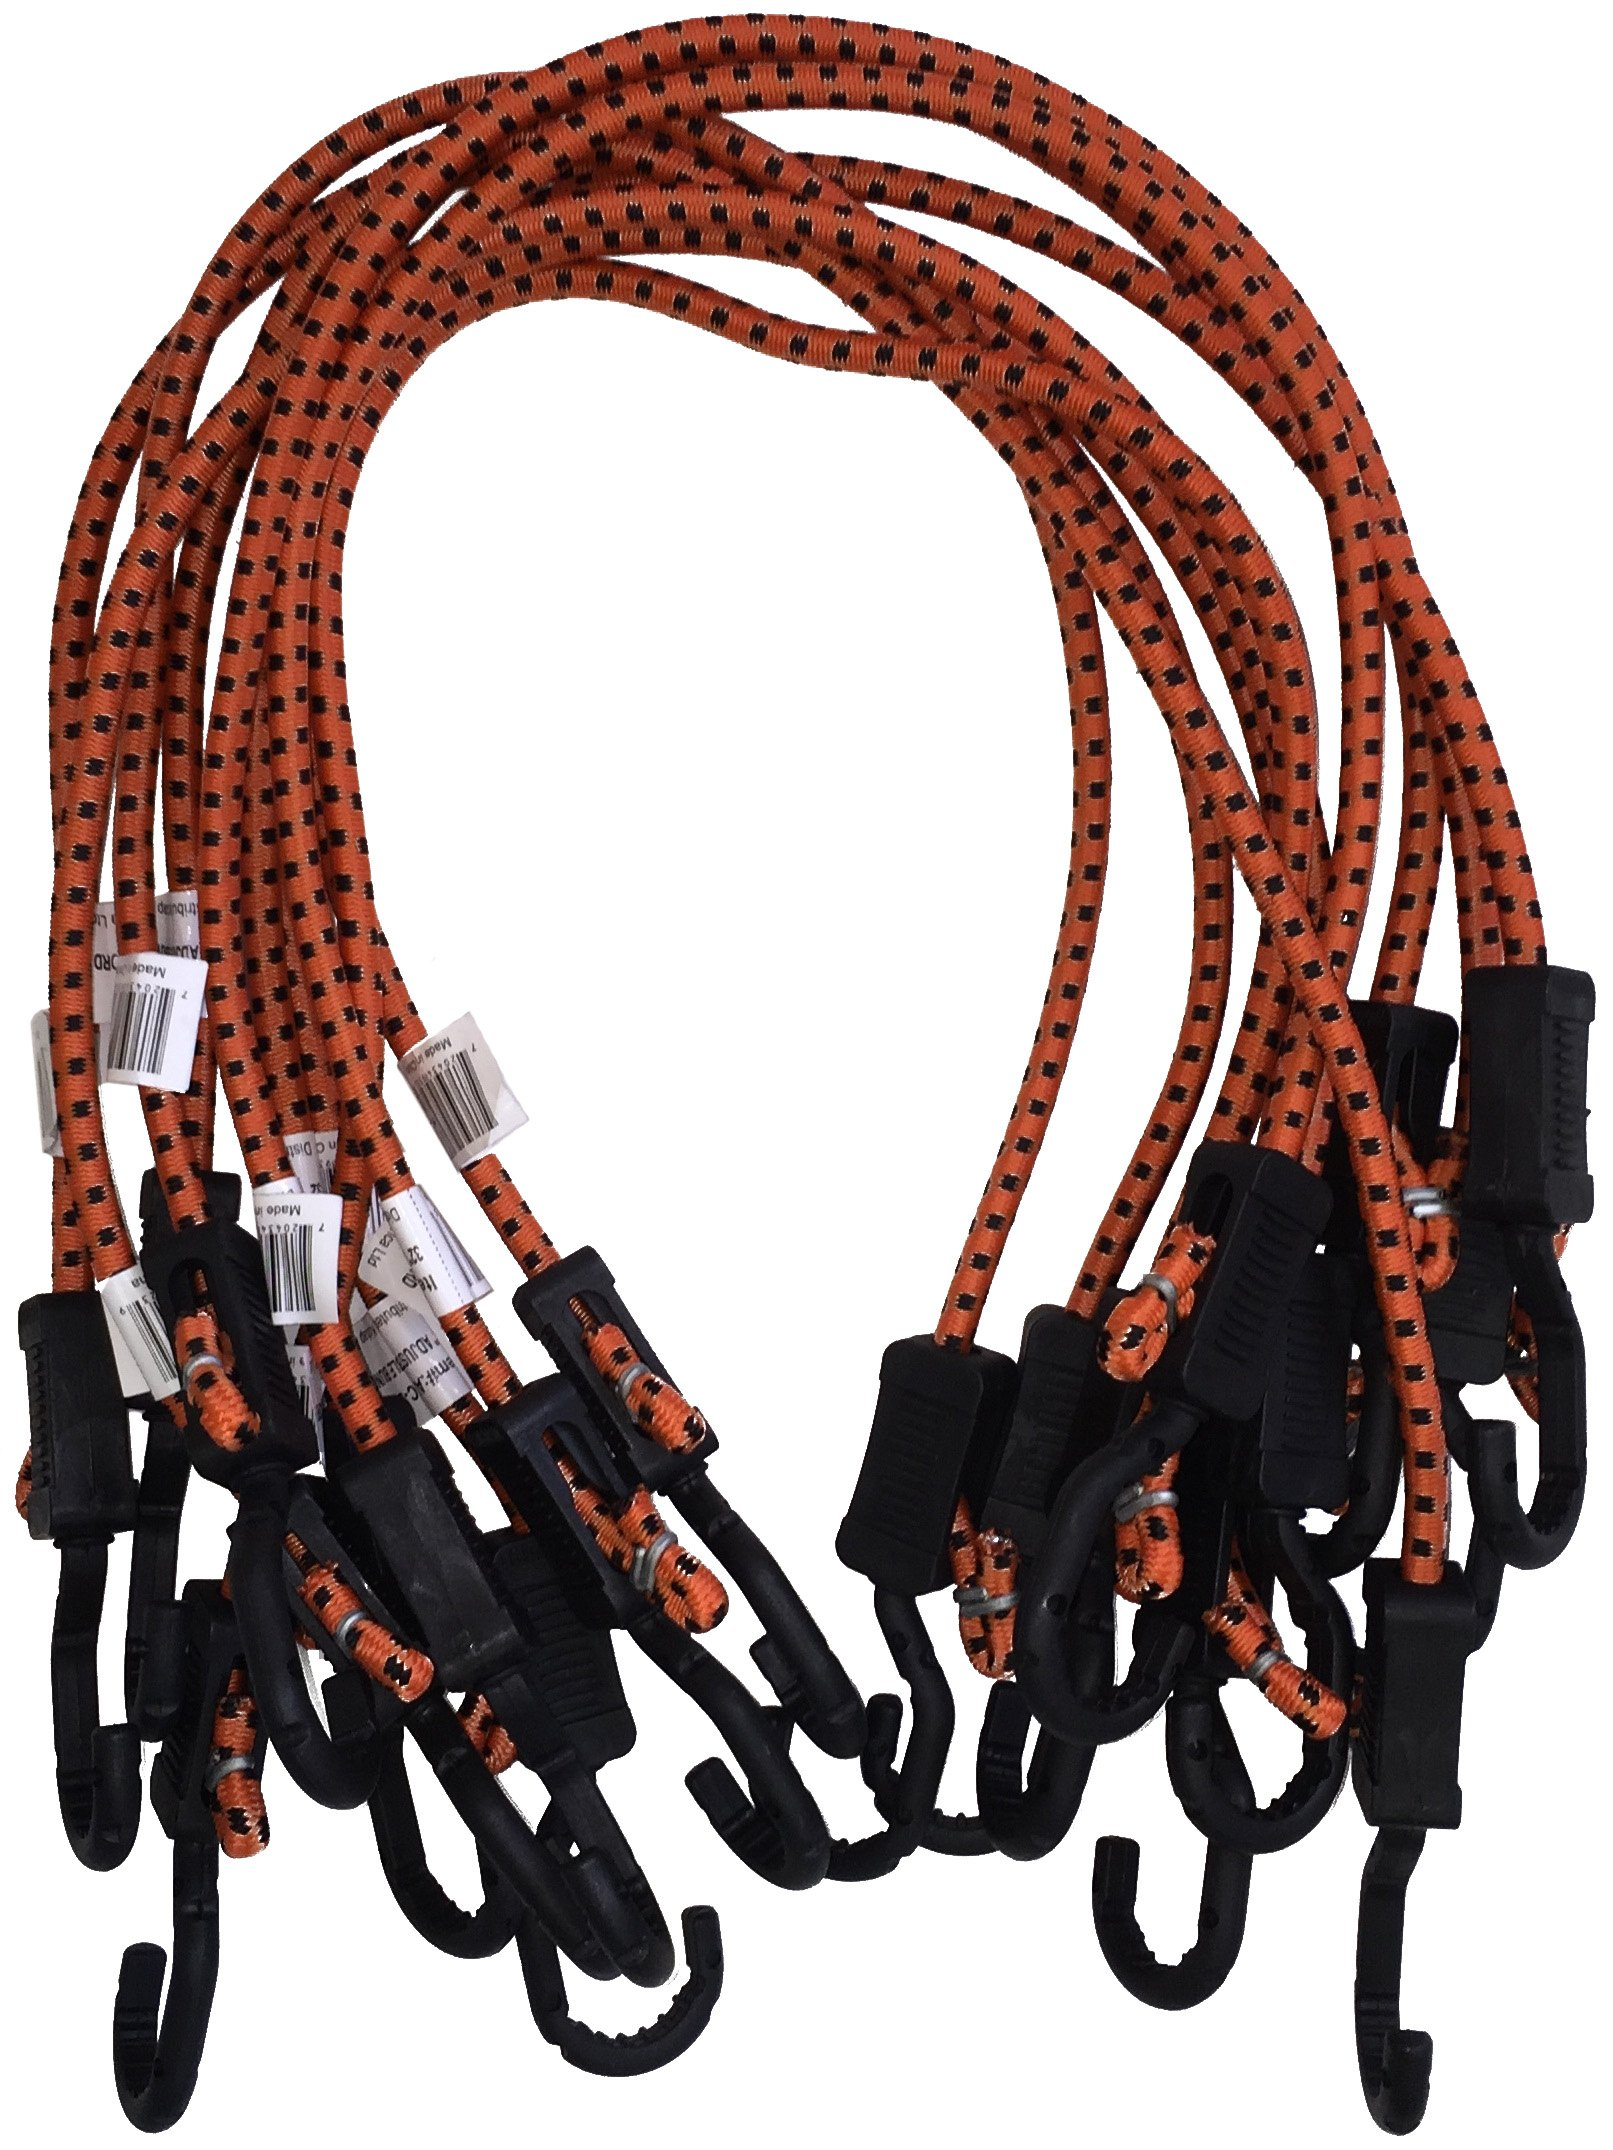 Kotap Adjustable 32-Inch Bungee Cords, 10-Piece, Item: MABC-32 by Kotap